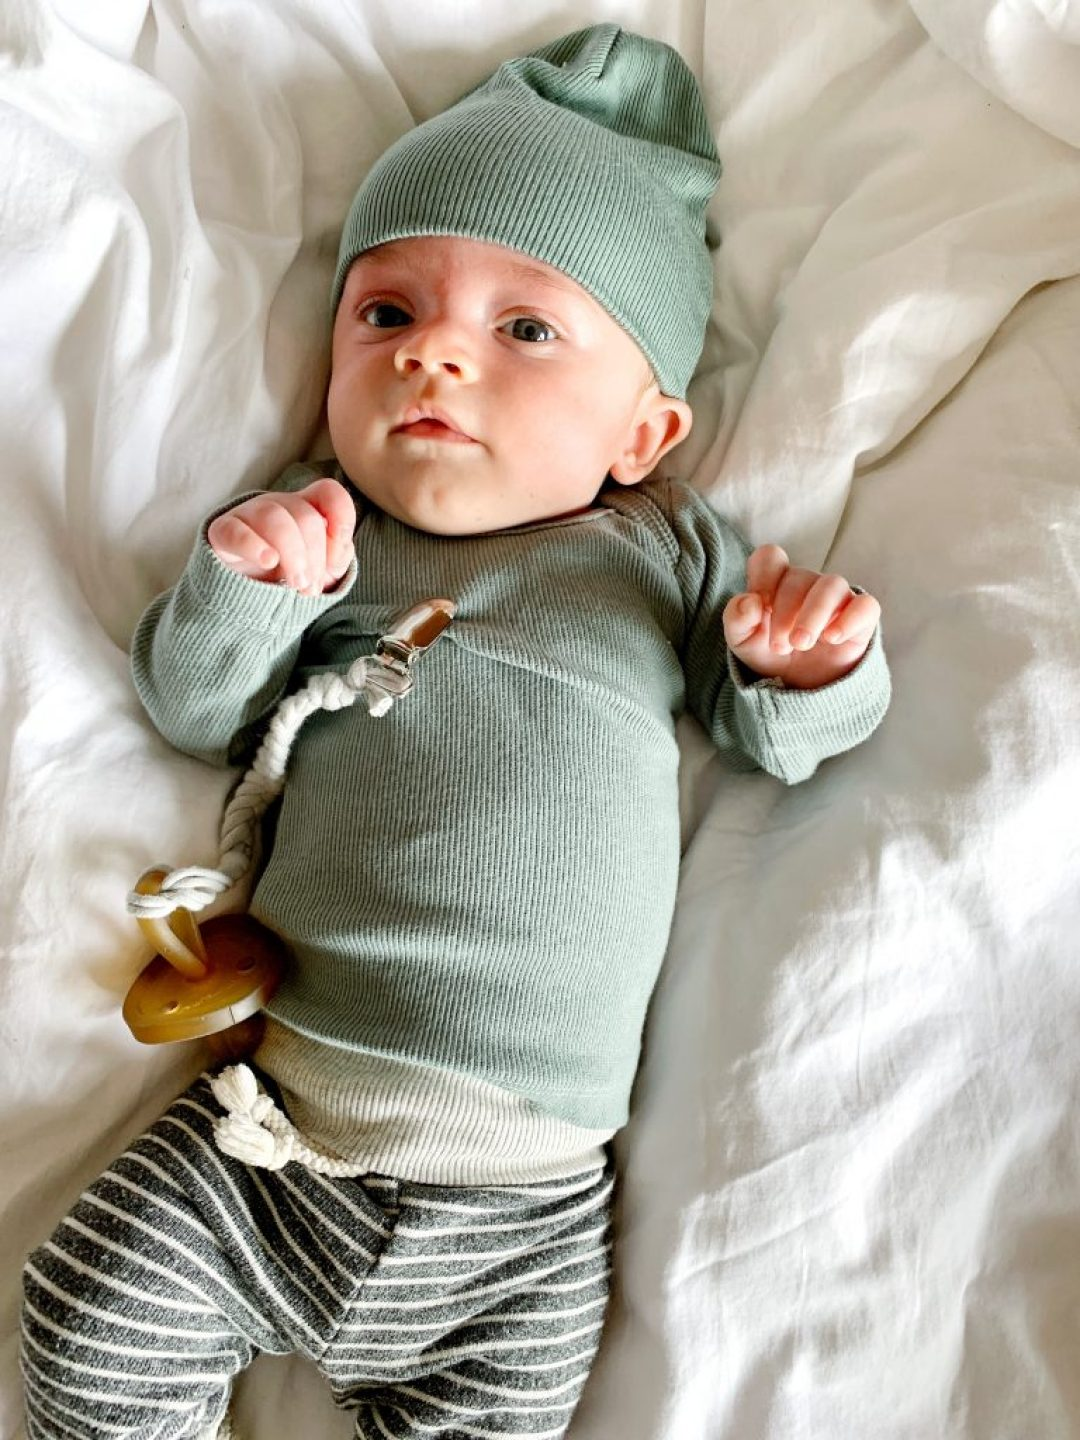 Packing for Ezra: What to Travel with for Your 3 Month Old